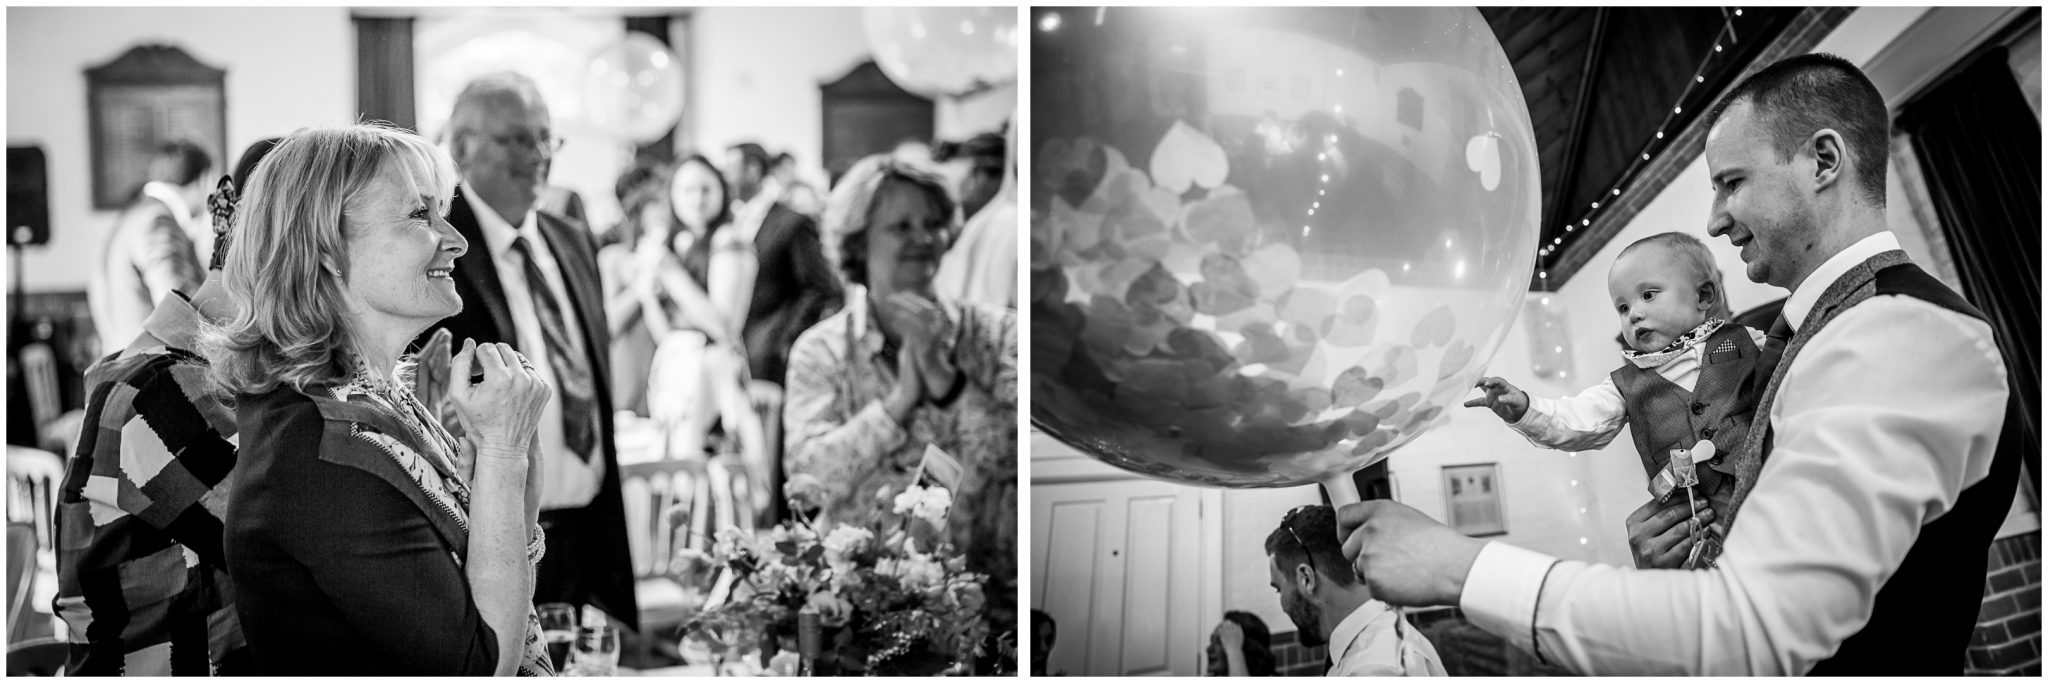 Candid black and white photography of wedding reception